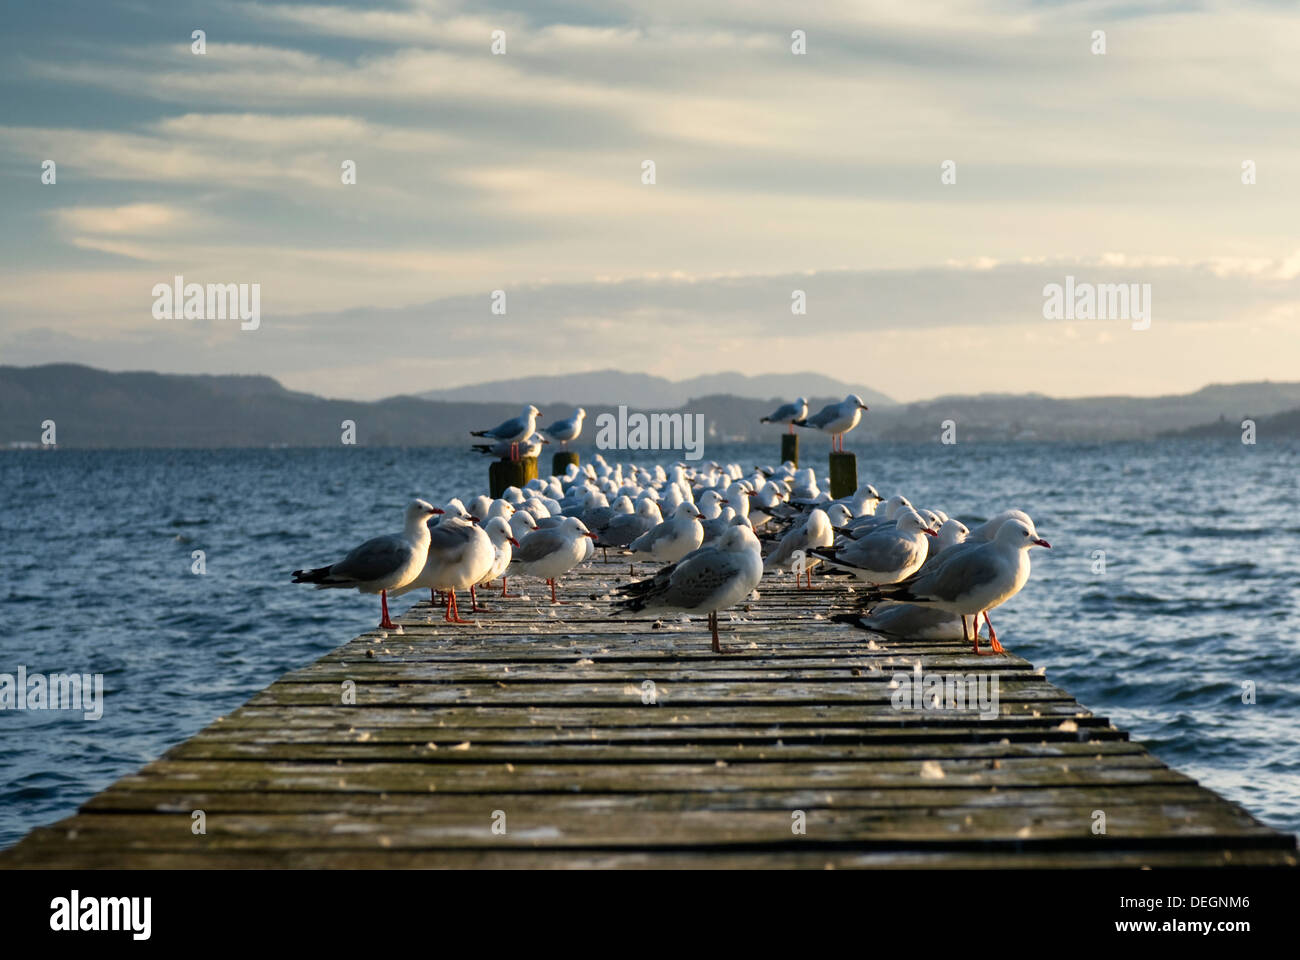 Sea gulls on jetty. Lake Rotoua, North Island, New Zealand - Stock Image